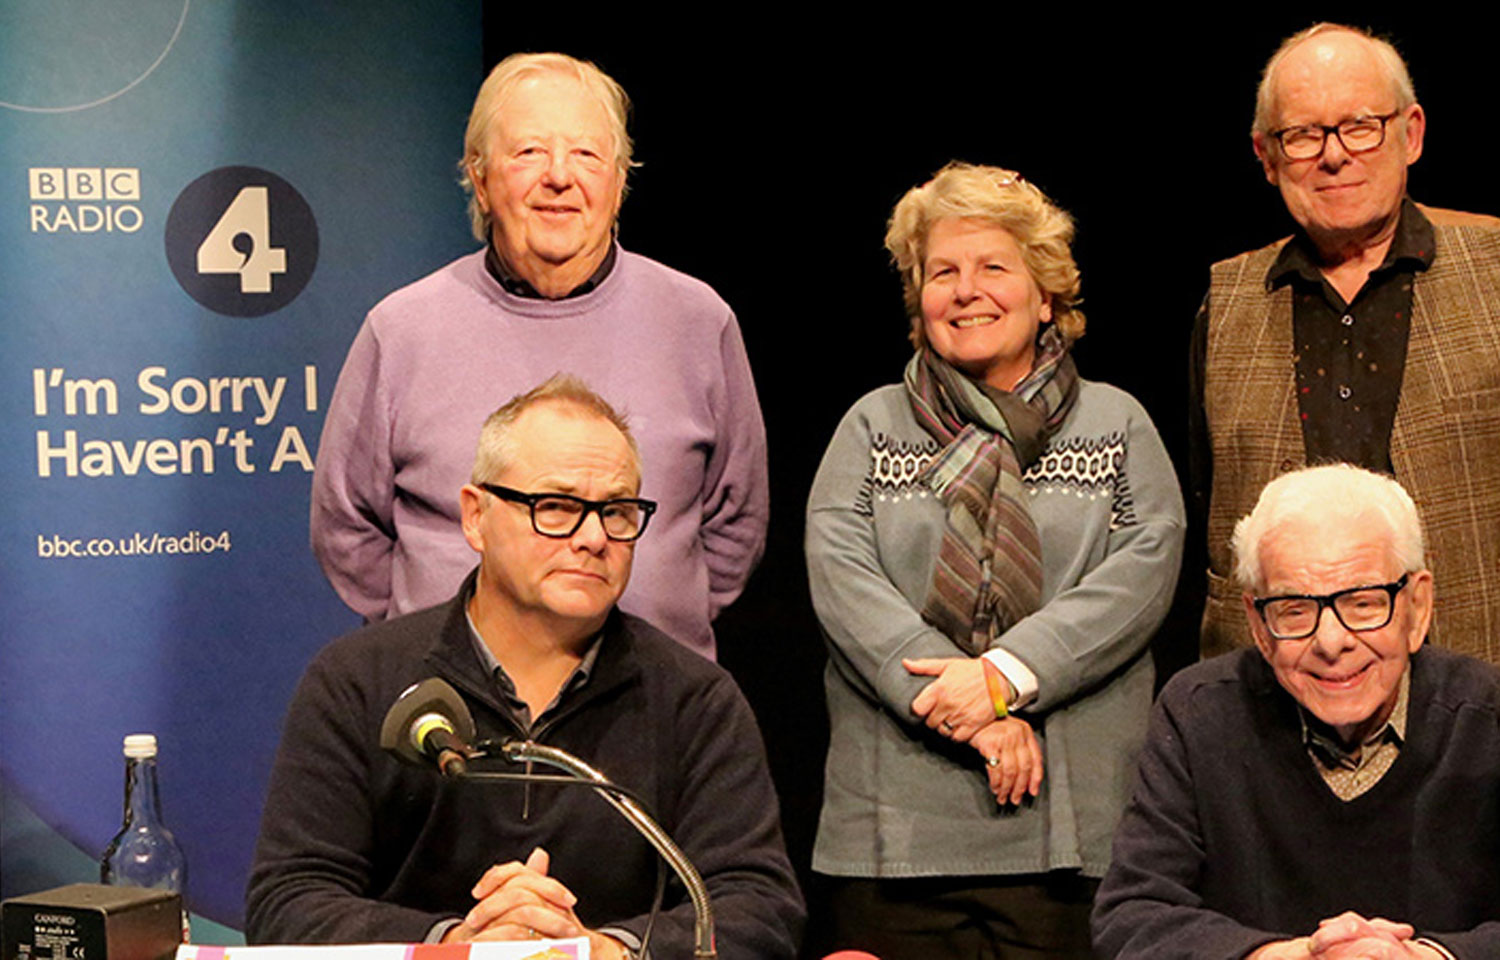 I'M SORRY I HAVEN'T A CLUE WINS BEST RADIO PANEL SHOW 2020